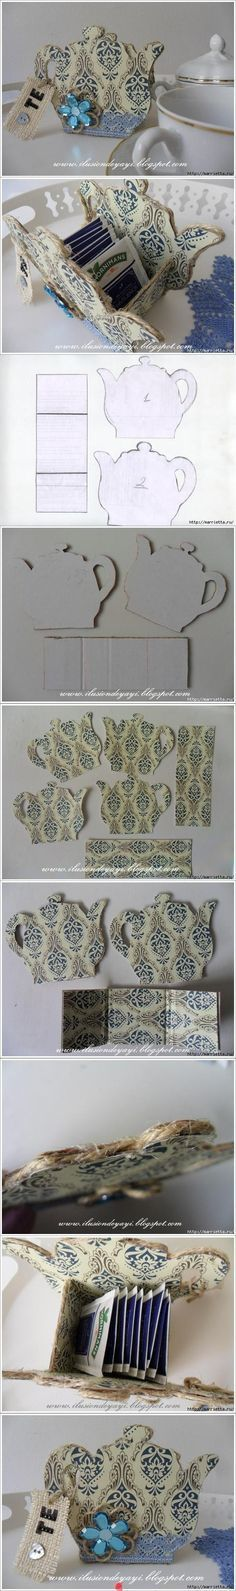 DIY Cardboard Tea Bag Holder                              …